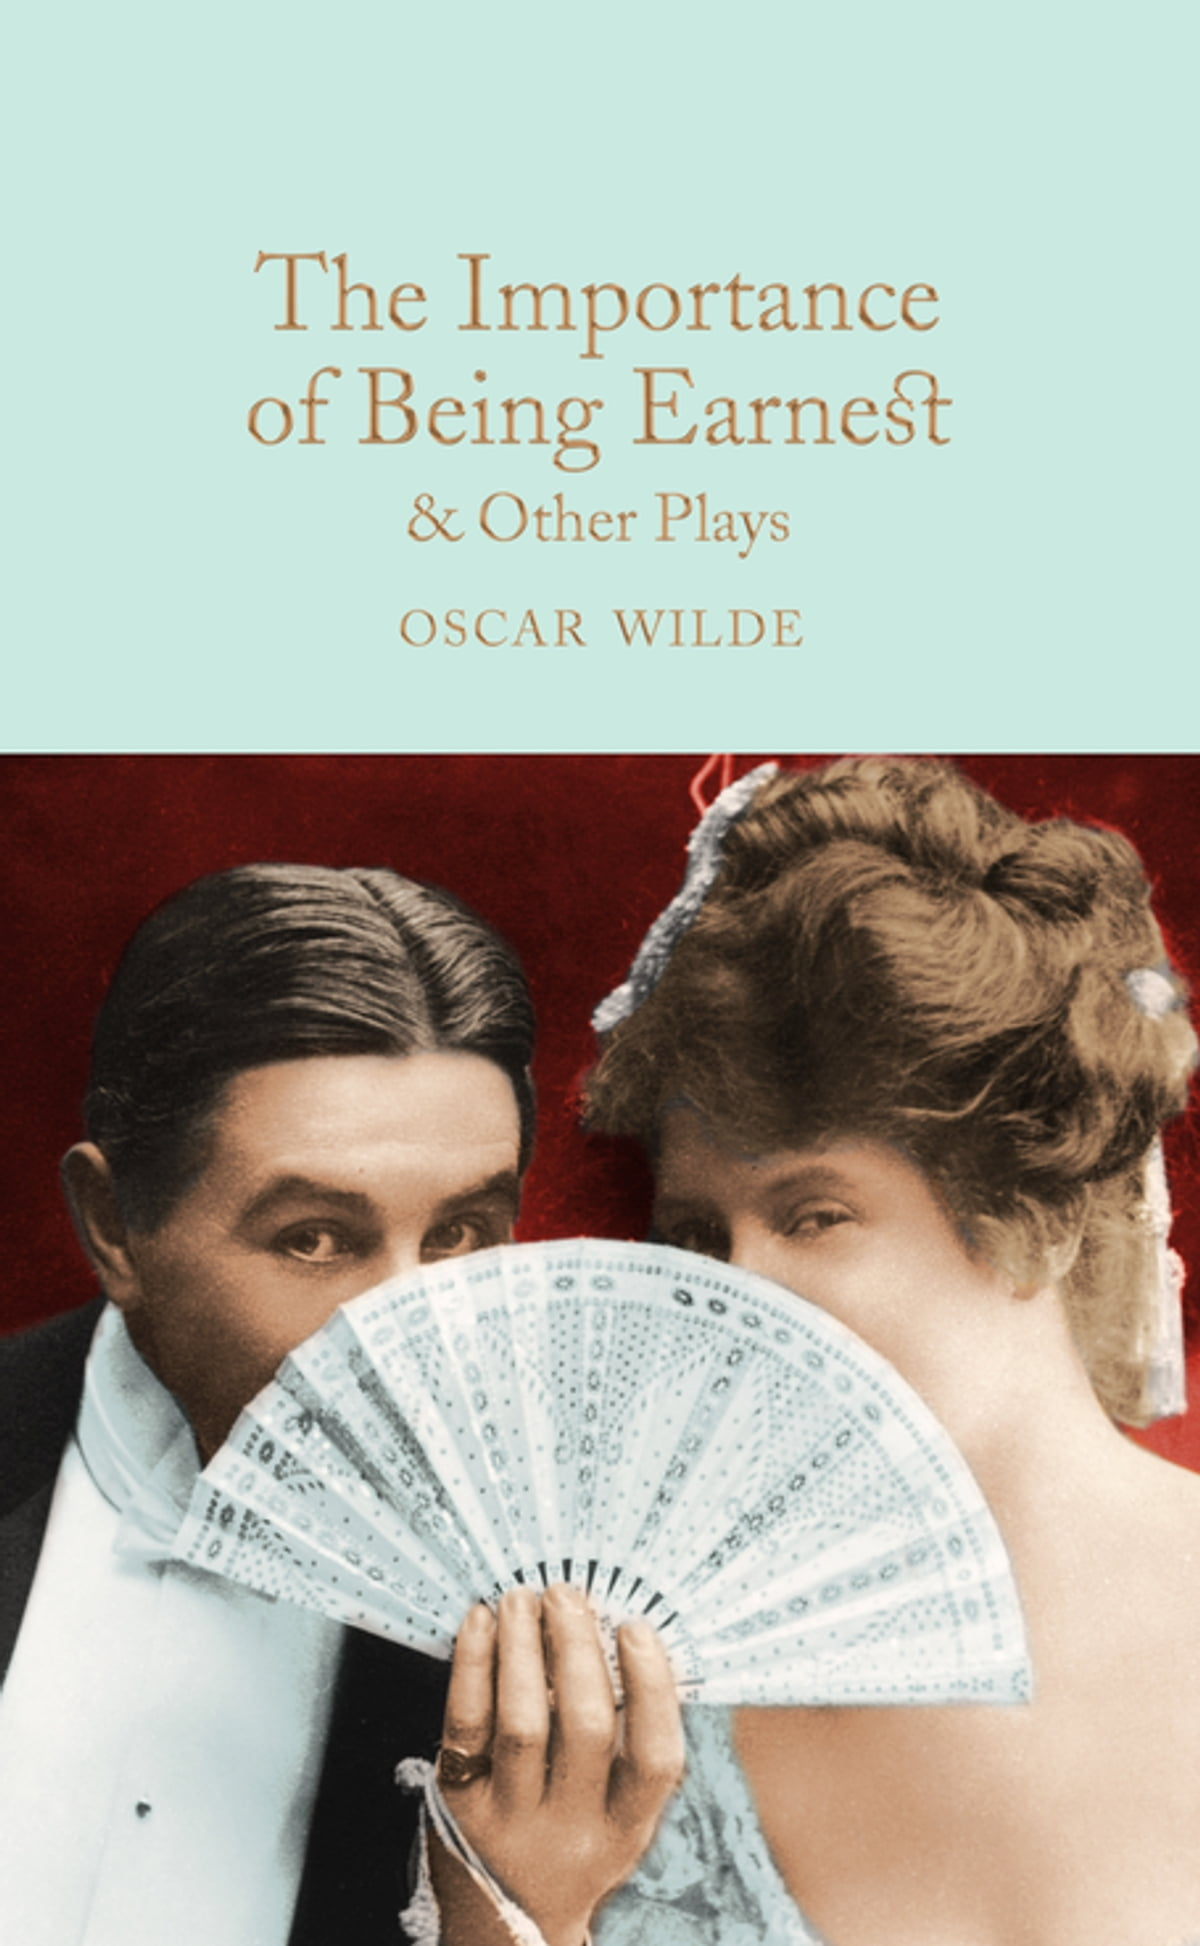 """an examination of oscar wilde's mockery An examination of oscar wilde's mockery of victorian conventions in """"the importance of being earnest"""" in victorian society, the conventional norms of status, gender roles, and marriage were closely linked by an institution that men and women were placed with unrealistic demands and expectations from society - an examination of oscar wilde's mockery of victorian conventions in """"the."""